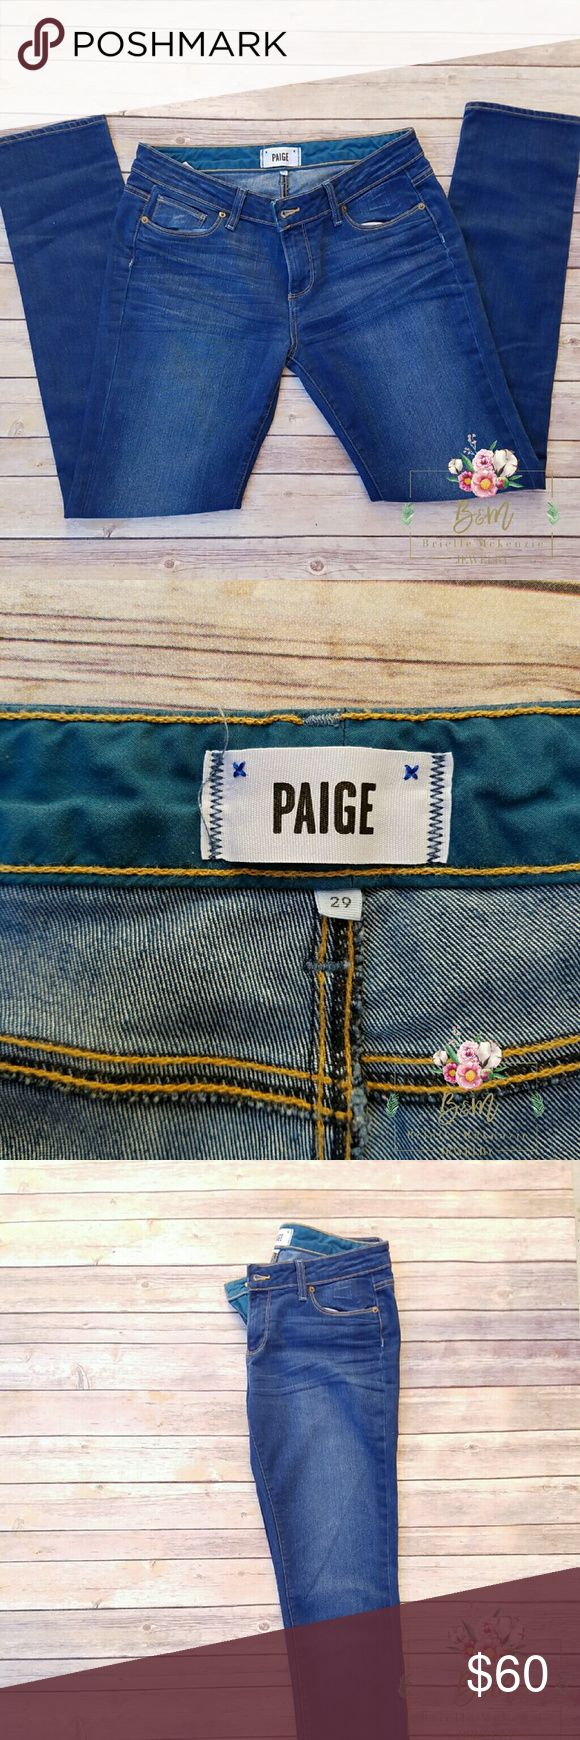 "PAIGE Jean Jimmy Jimmy Skinny Very comfortable jeans. Low rise. In excellent  condition   Inseam 31"" 73% Cotton  27% Elasterell-p Paige Jeans Jeans Skinny"